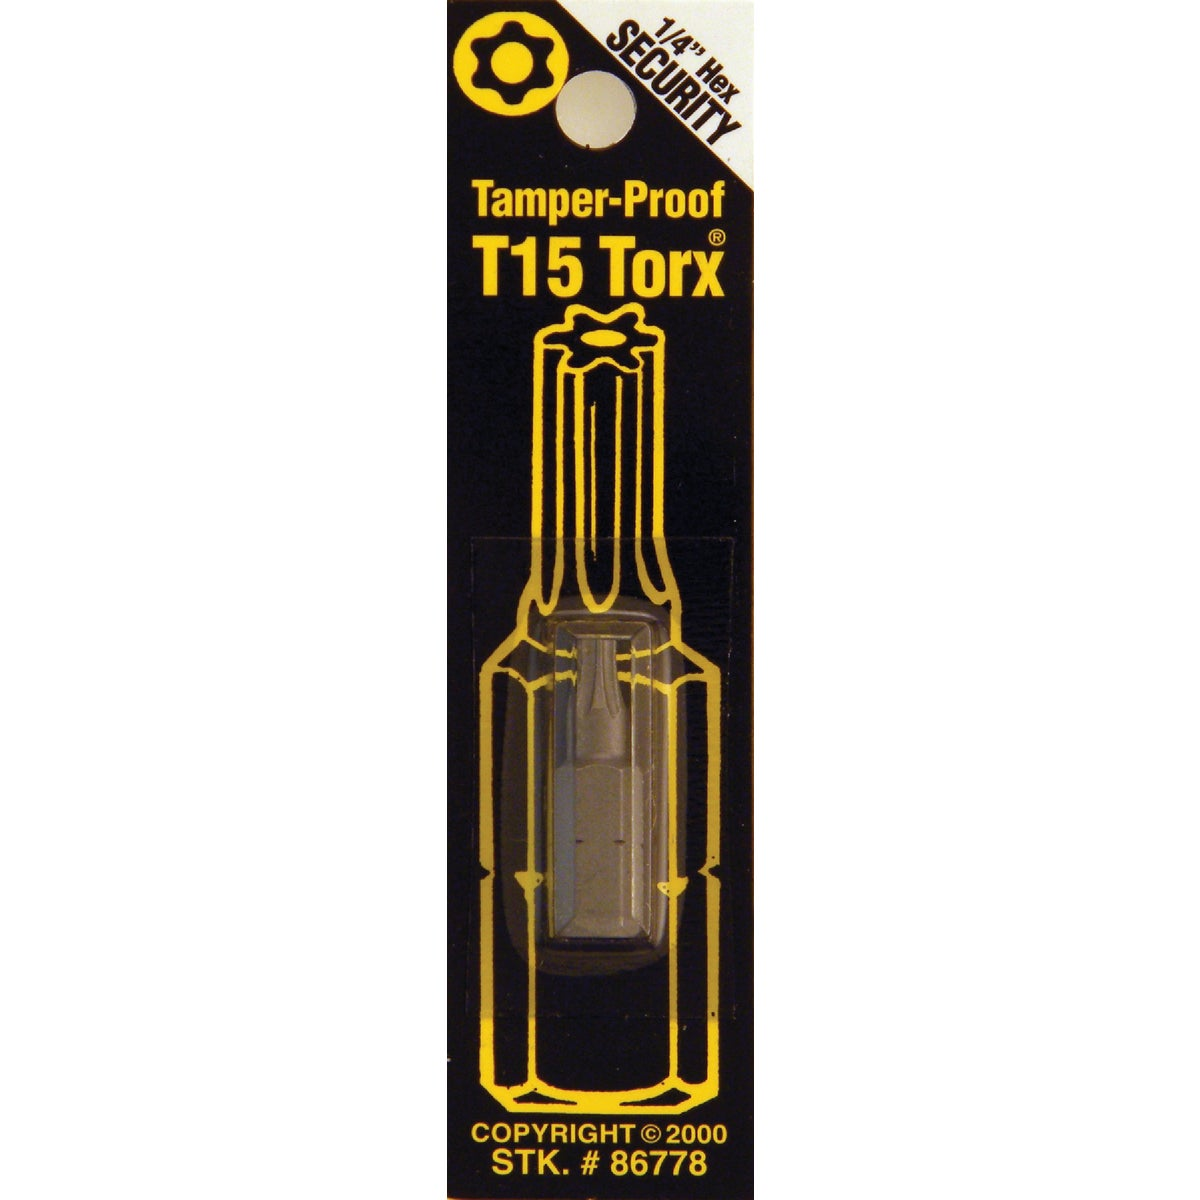 T15 TMPR SECURITY BIT - 86778 by Bwt Inc